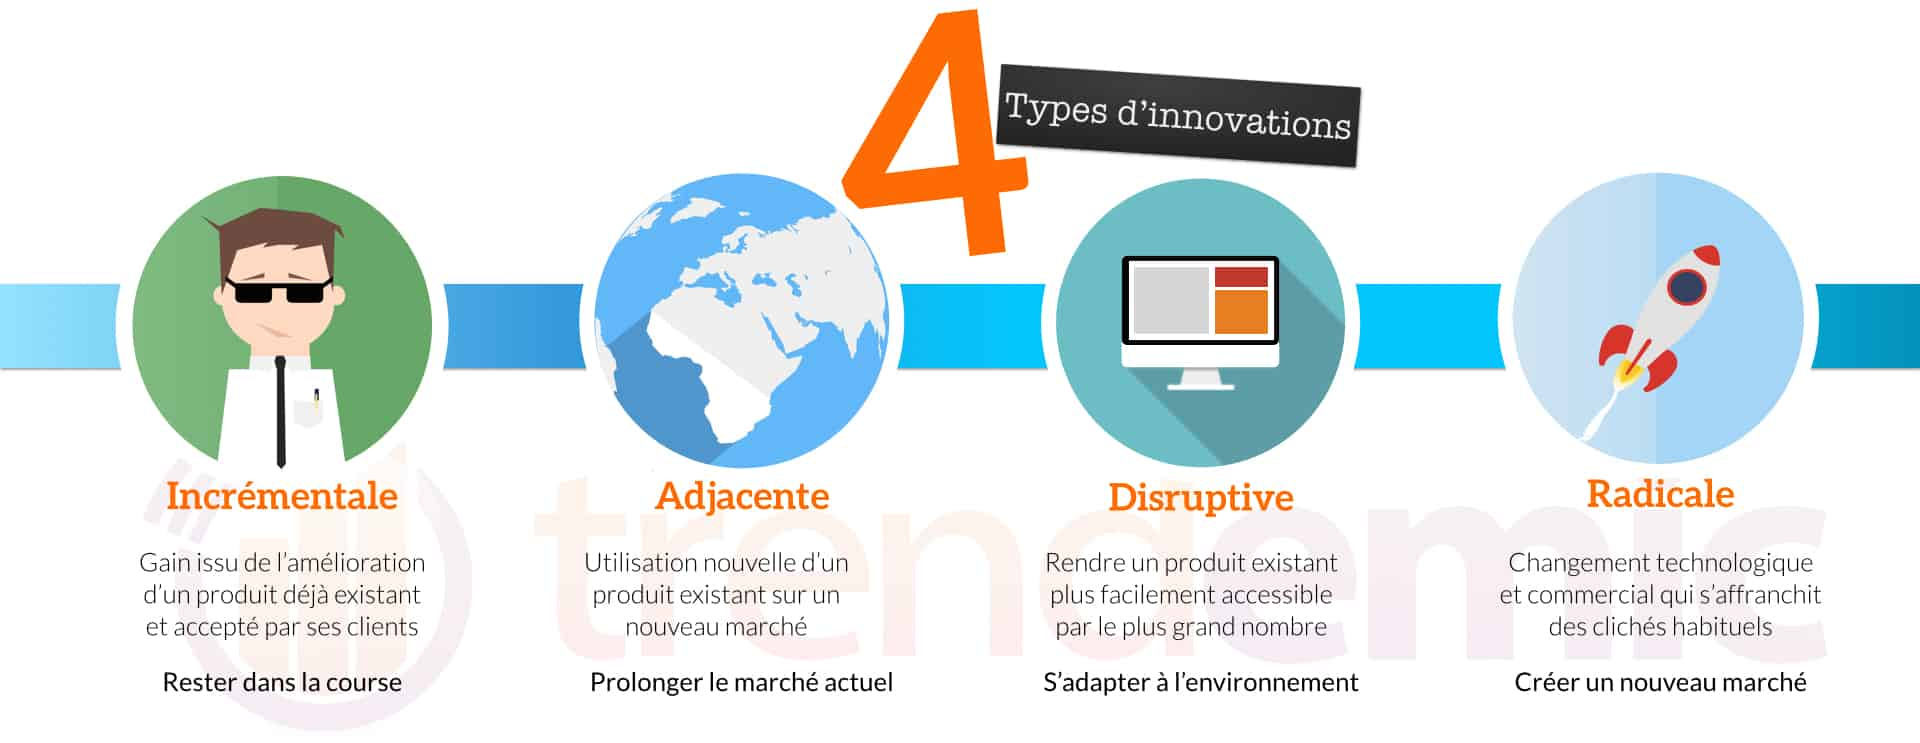 innovation radicale trendemic